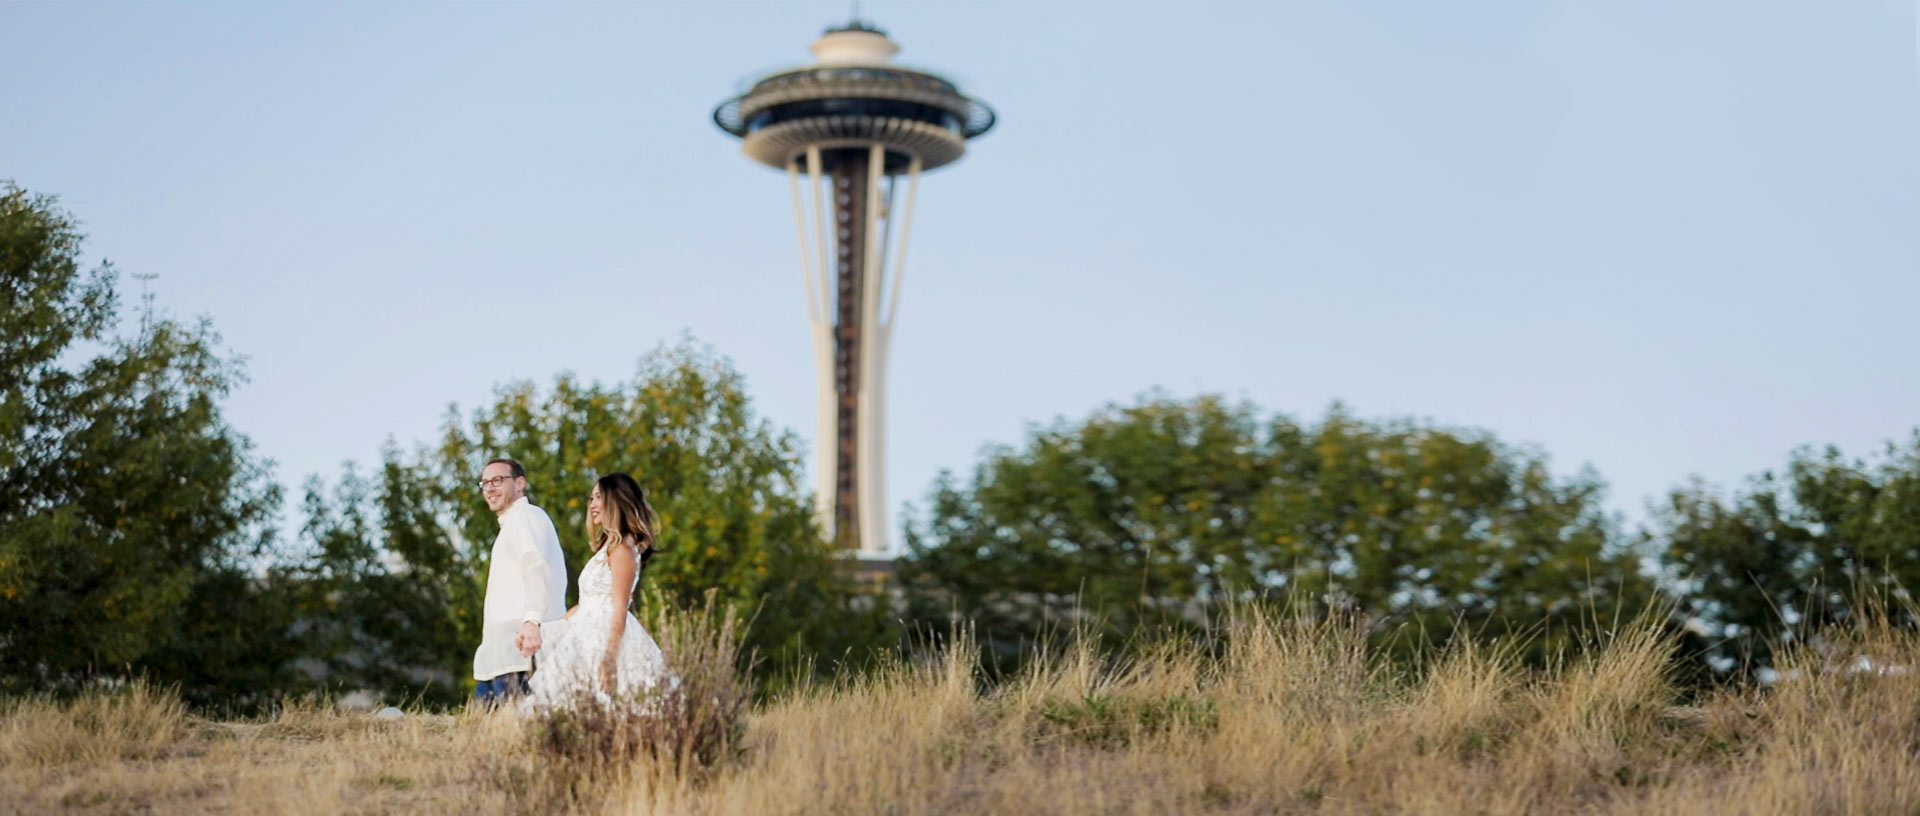 David + Raychel | Seattle, Washington | Olympic Sculpture Park